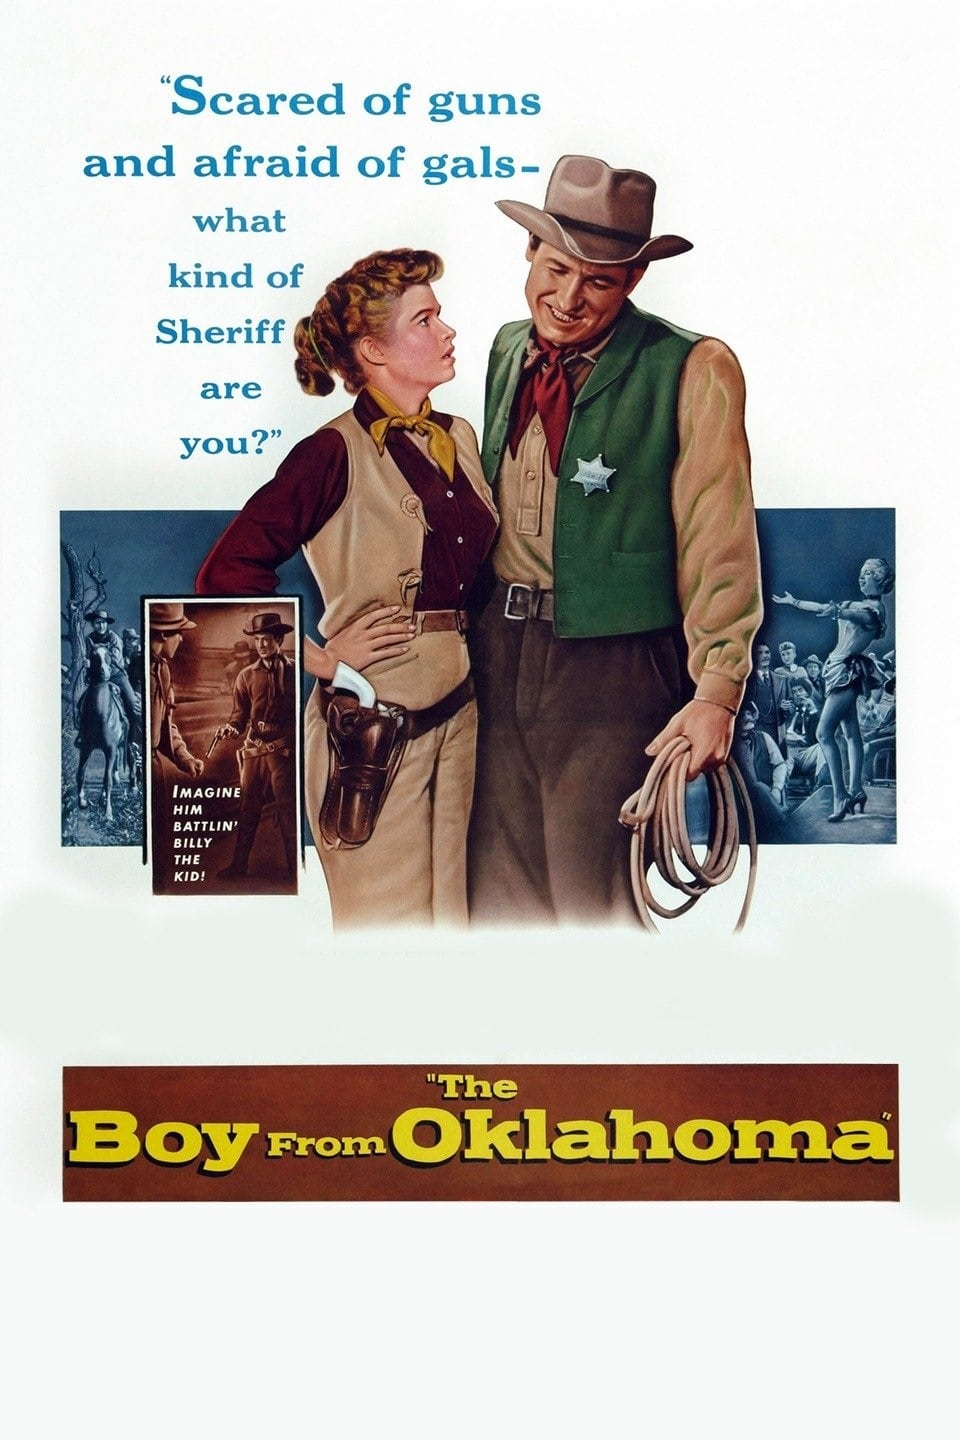 The Boy from Oklahoma